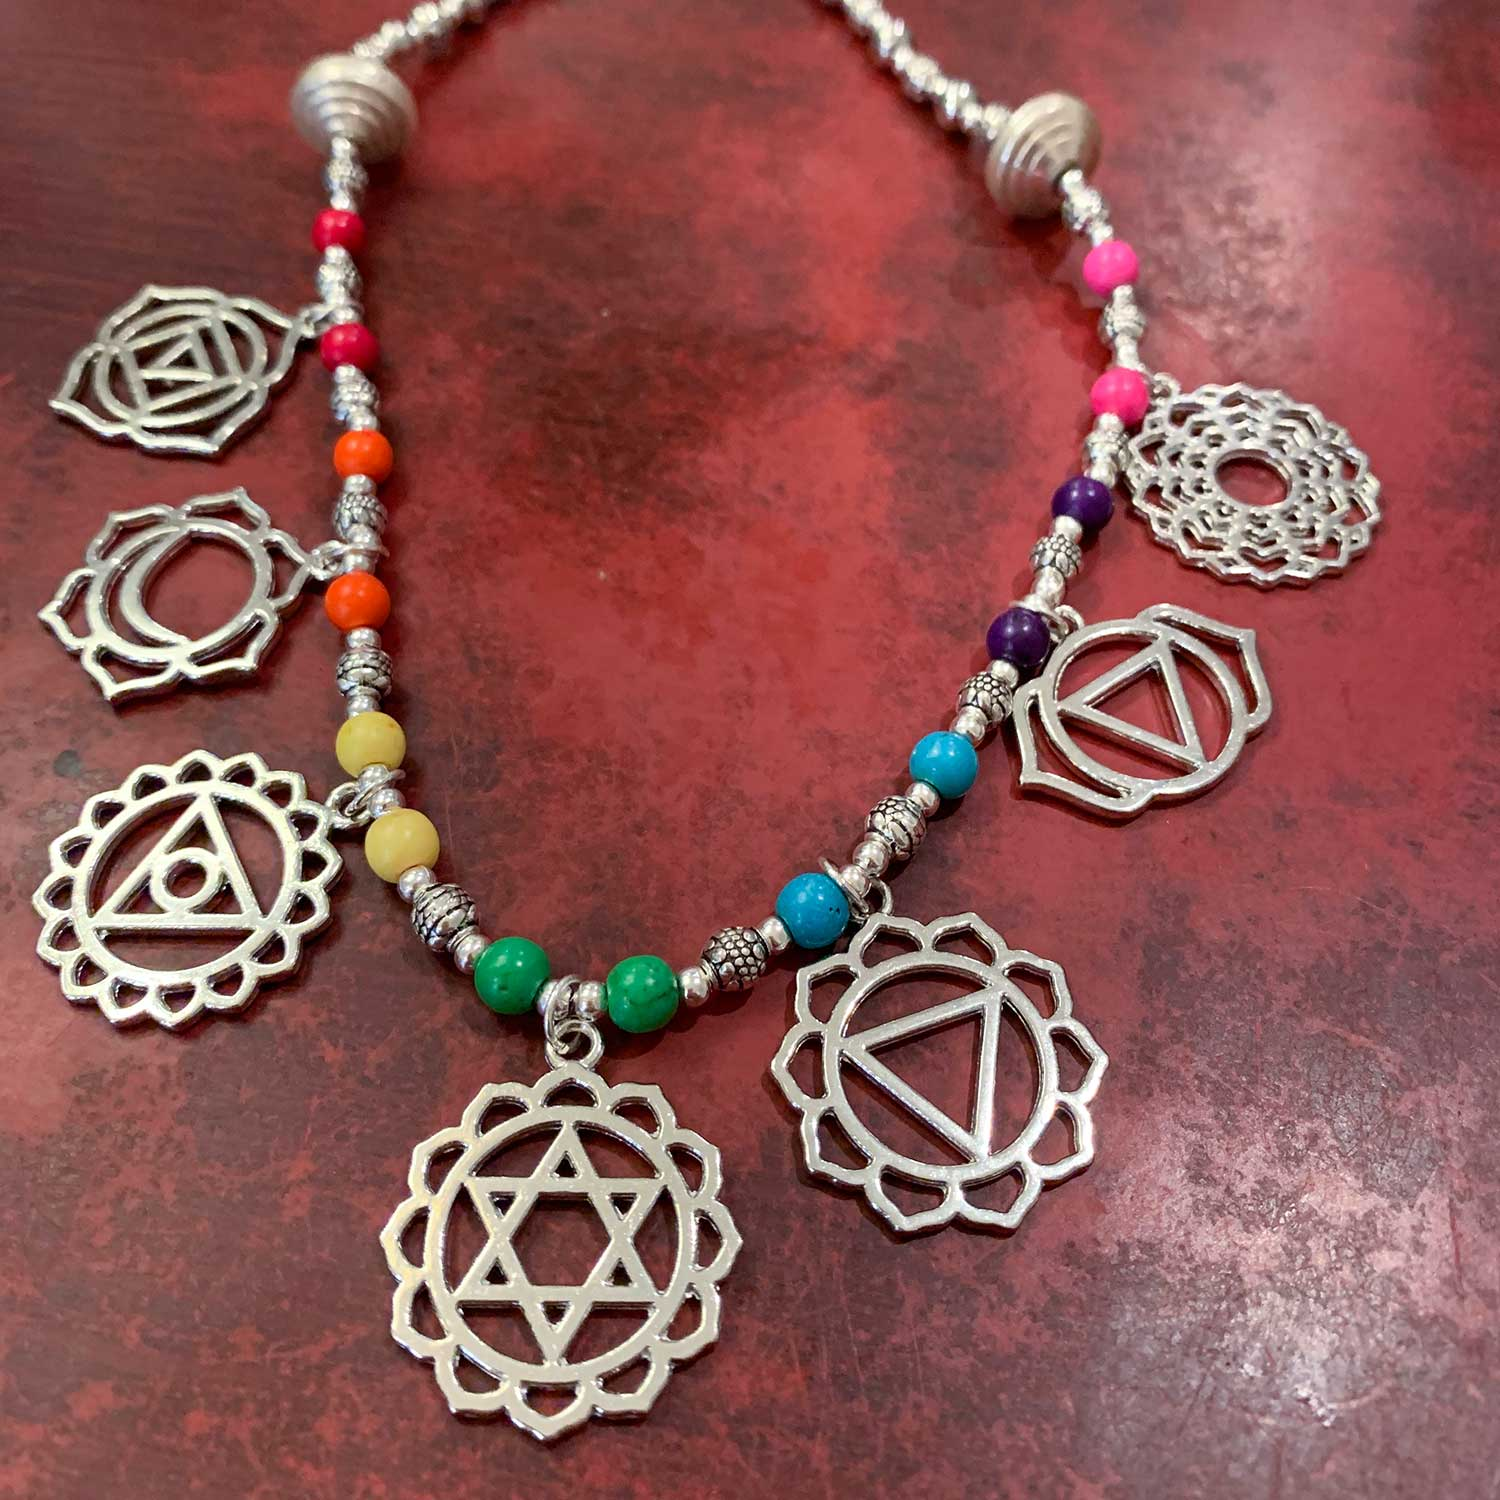 Beatrex_Chakra_necklace3_web